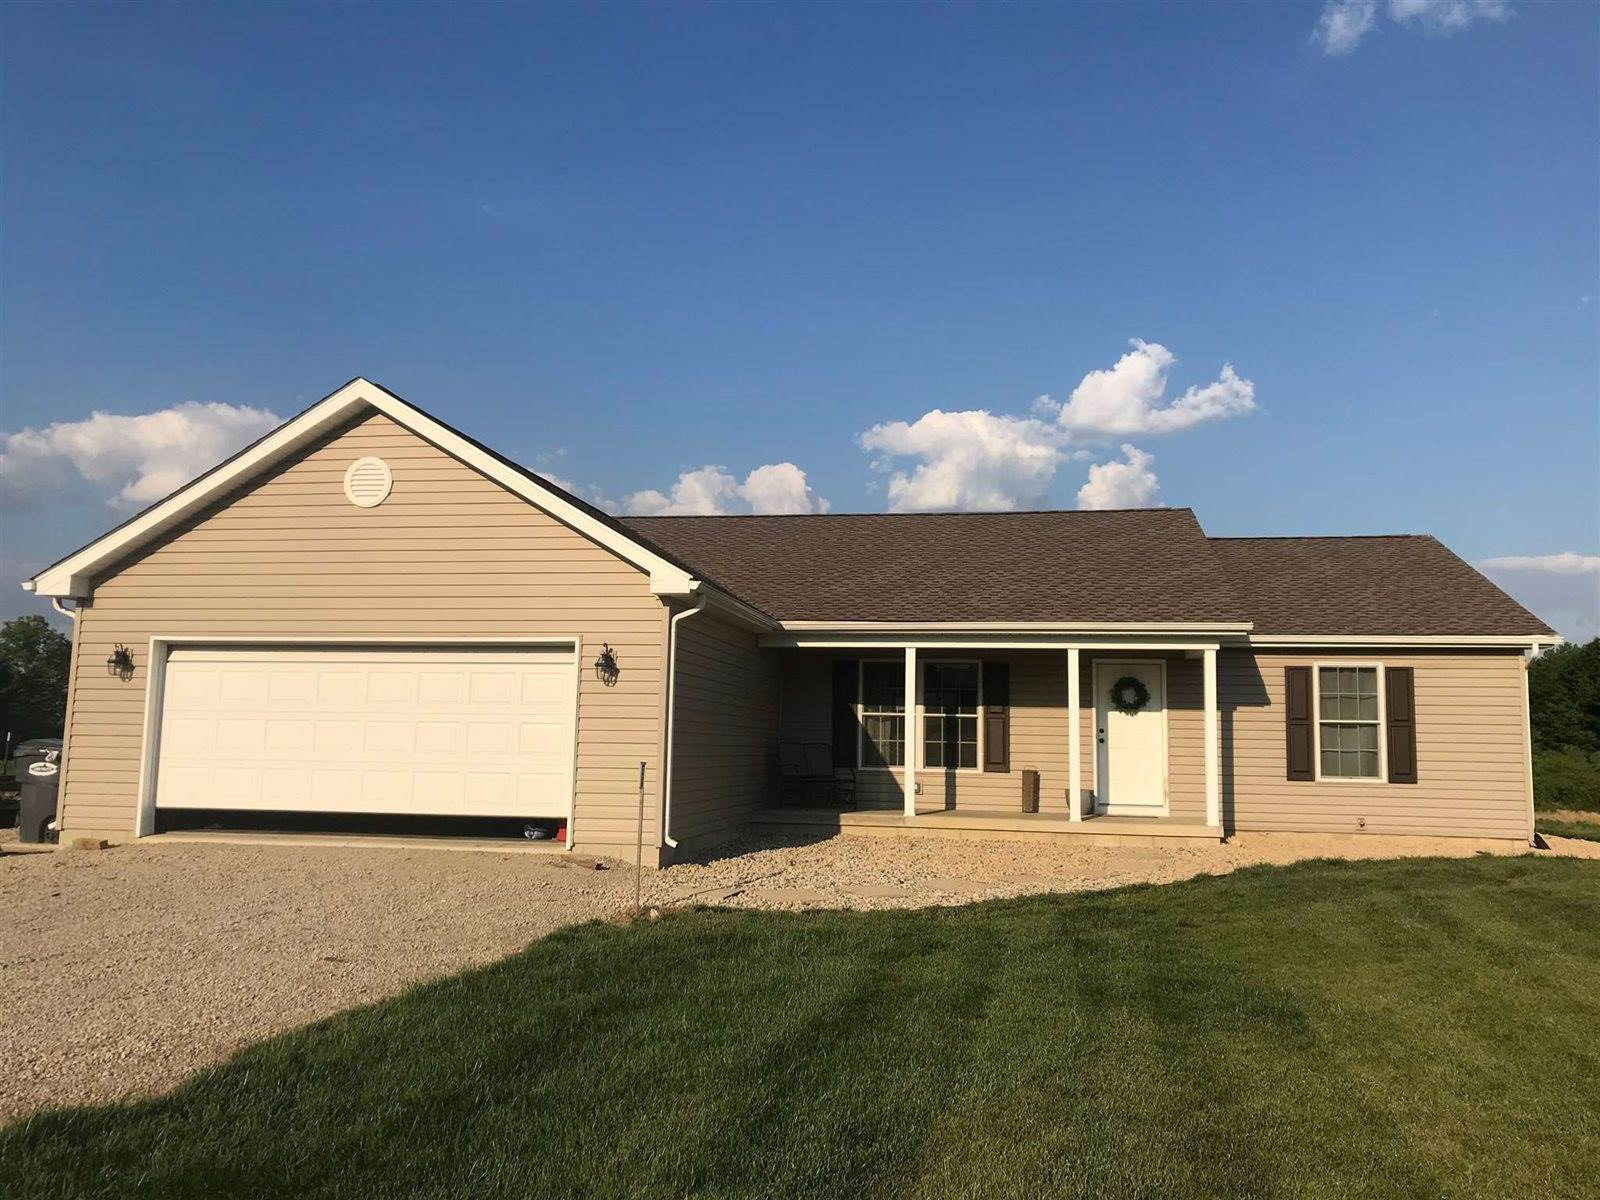 7701 N 100 W Road, Hartford City, IN 47348